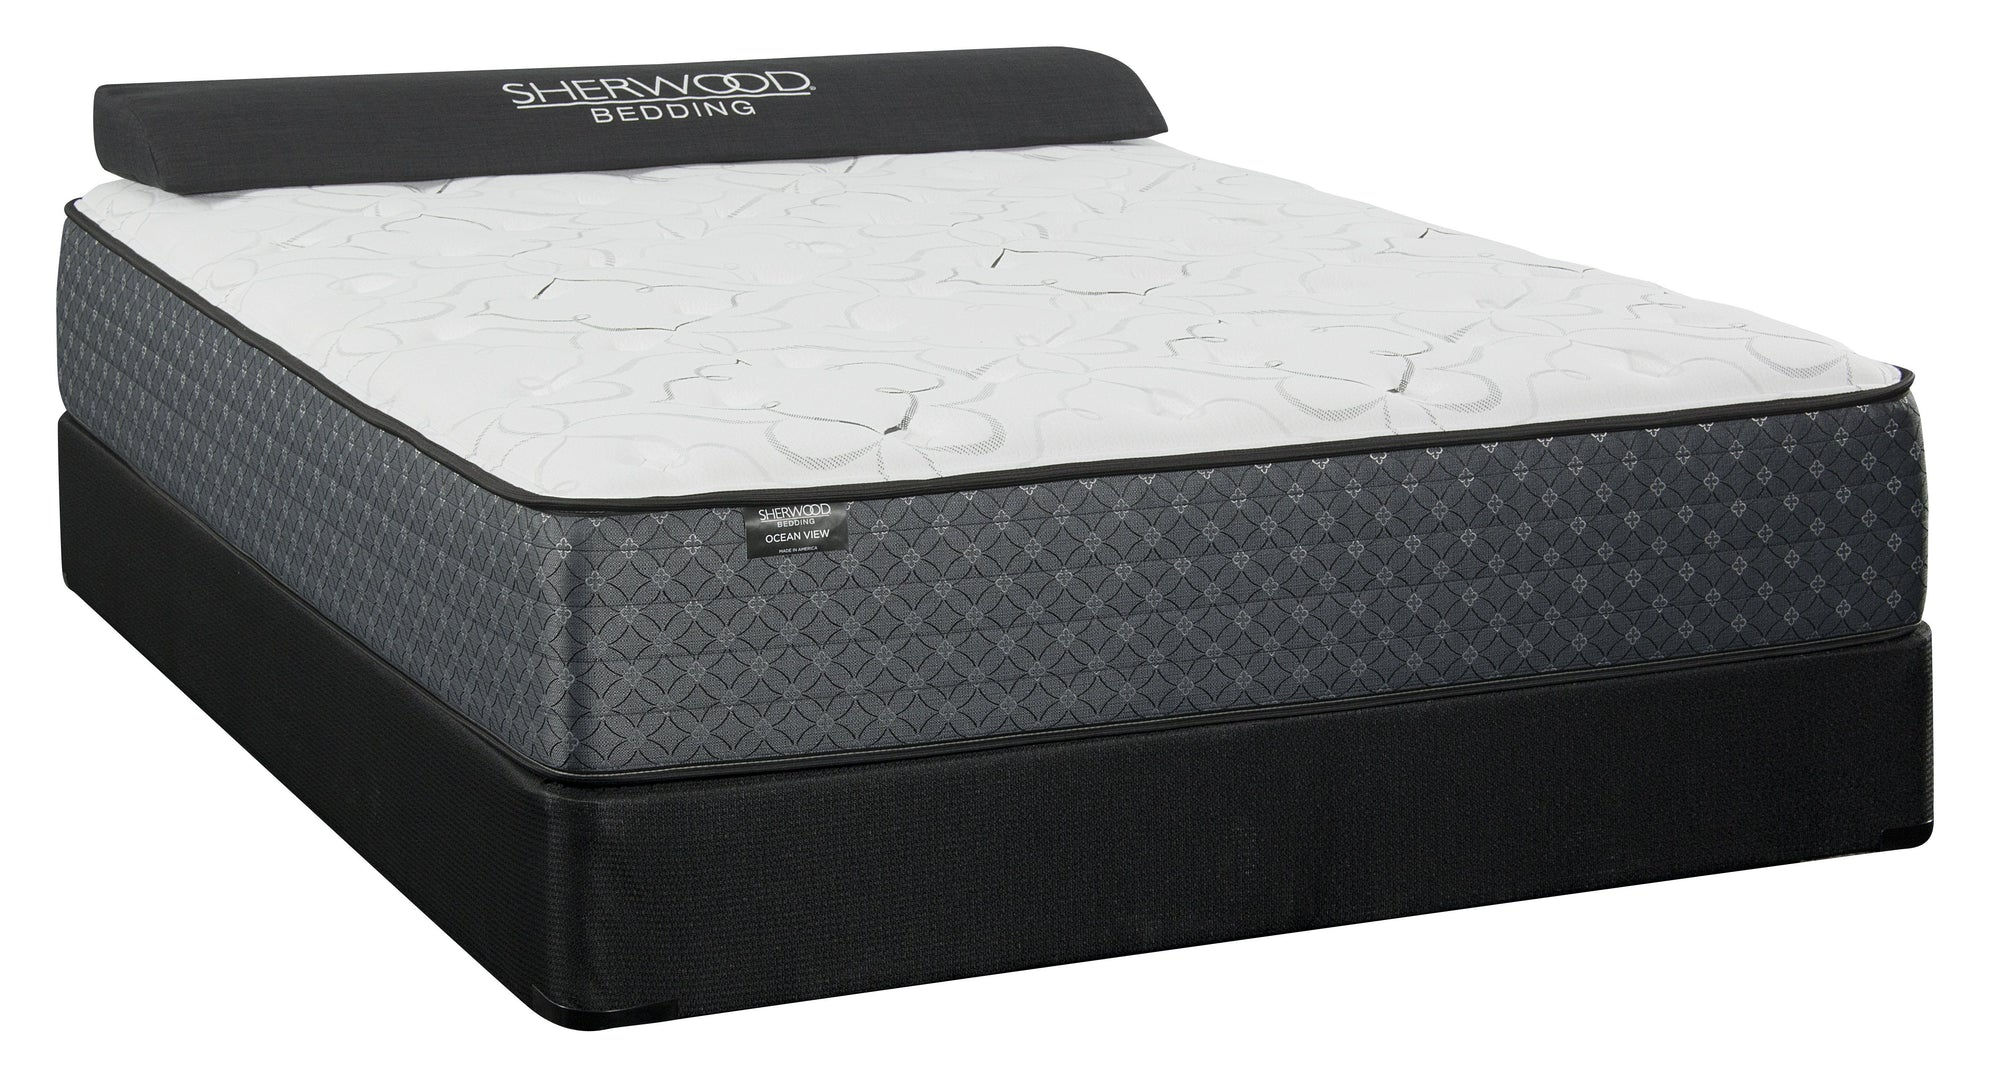 Sherwood Ocean View Plush Mattress Mattress Sherwood